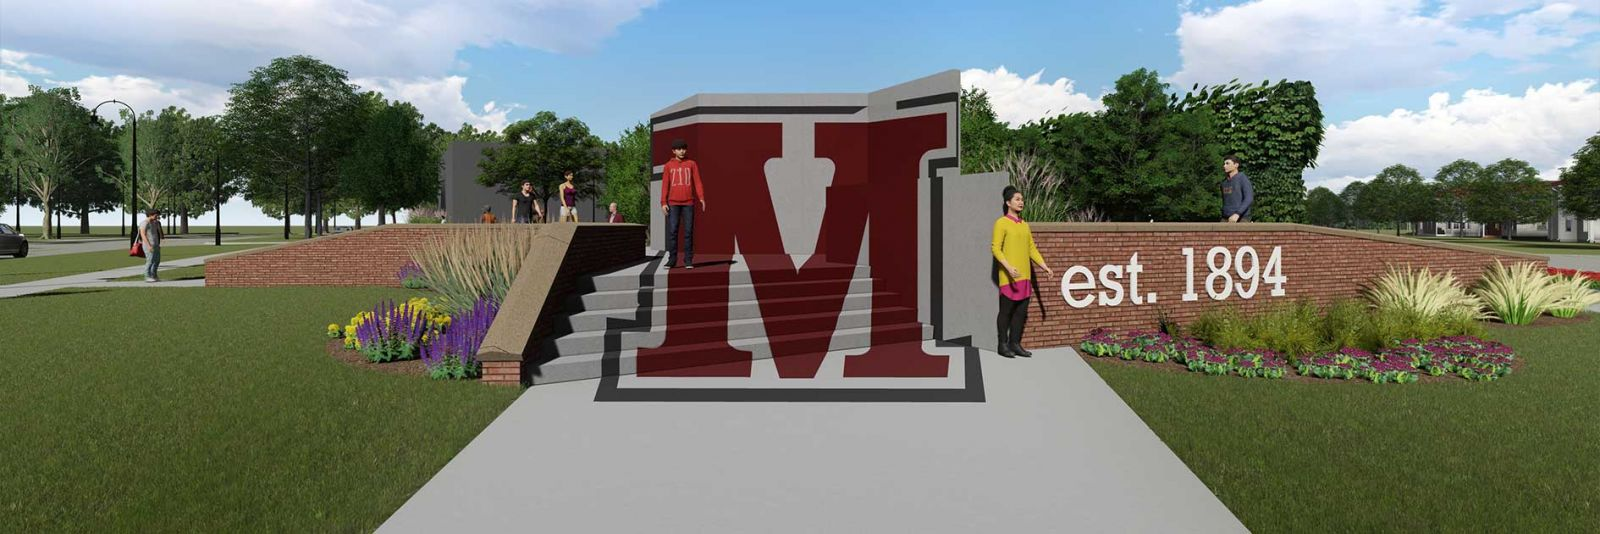 3D rendering corner lot interactive Morningside logo sculpture